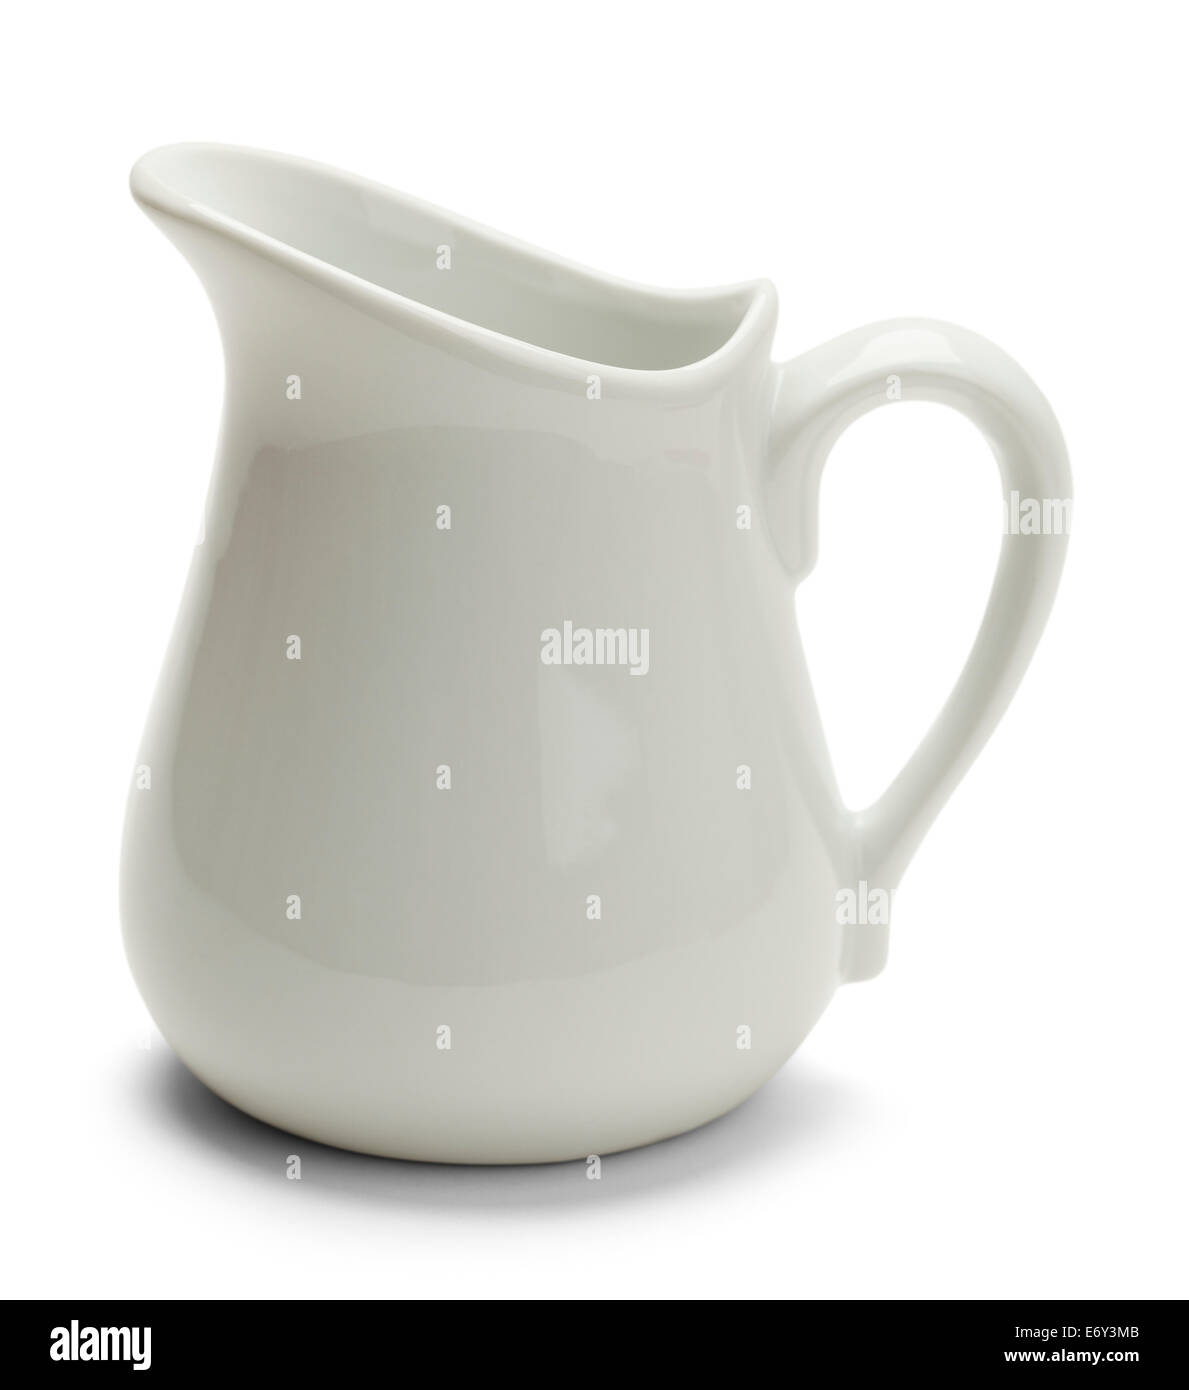 Ceramic Glass Pitcher From Side View Isolated on White Background. - Stock Image